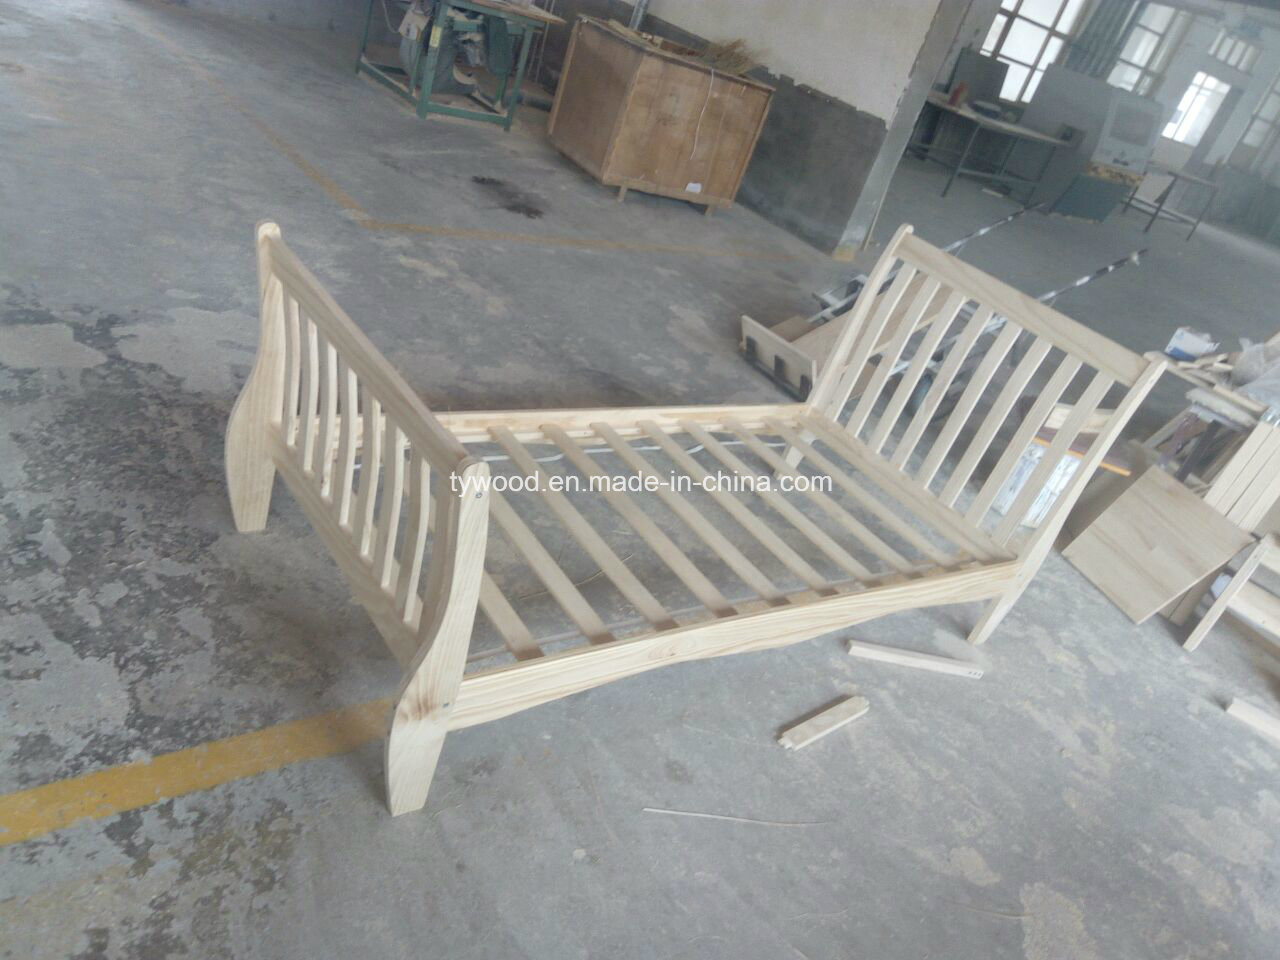 Single Bed in Natural with Sleigh Design